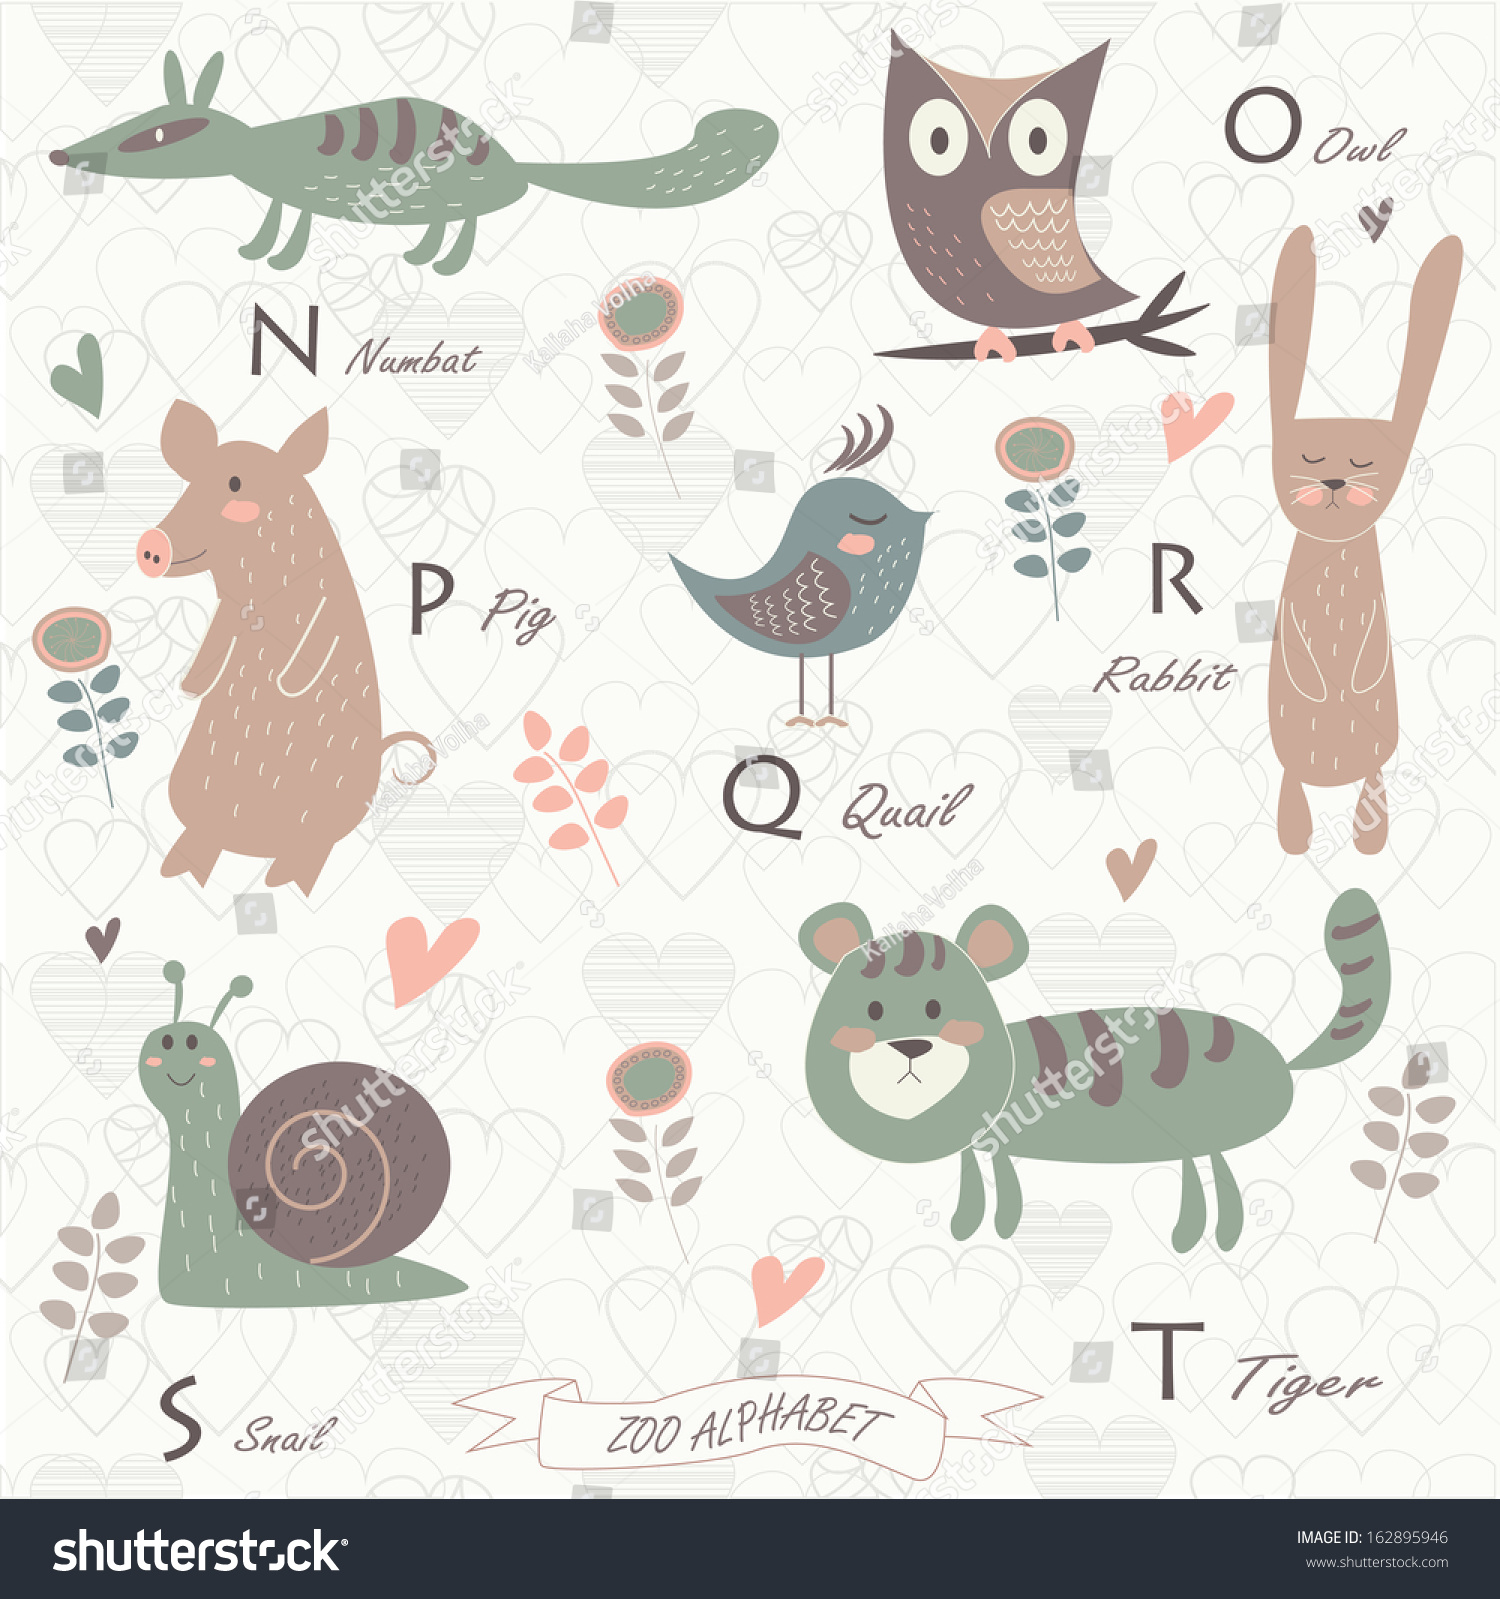 animals that start with the letter q zoo animals starting with s images hewan lucu terbaru 20191